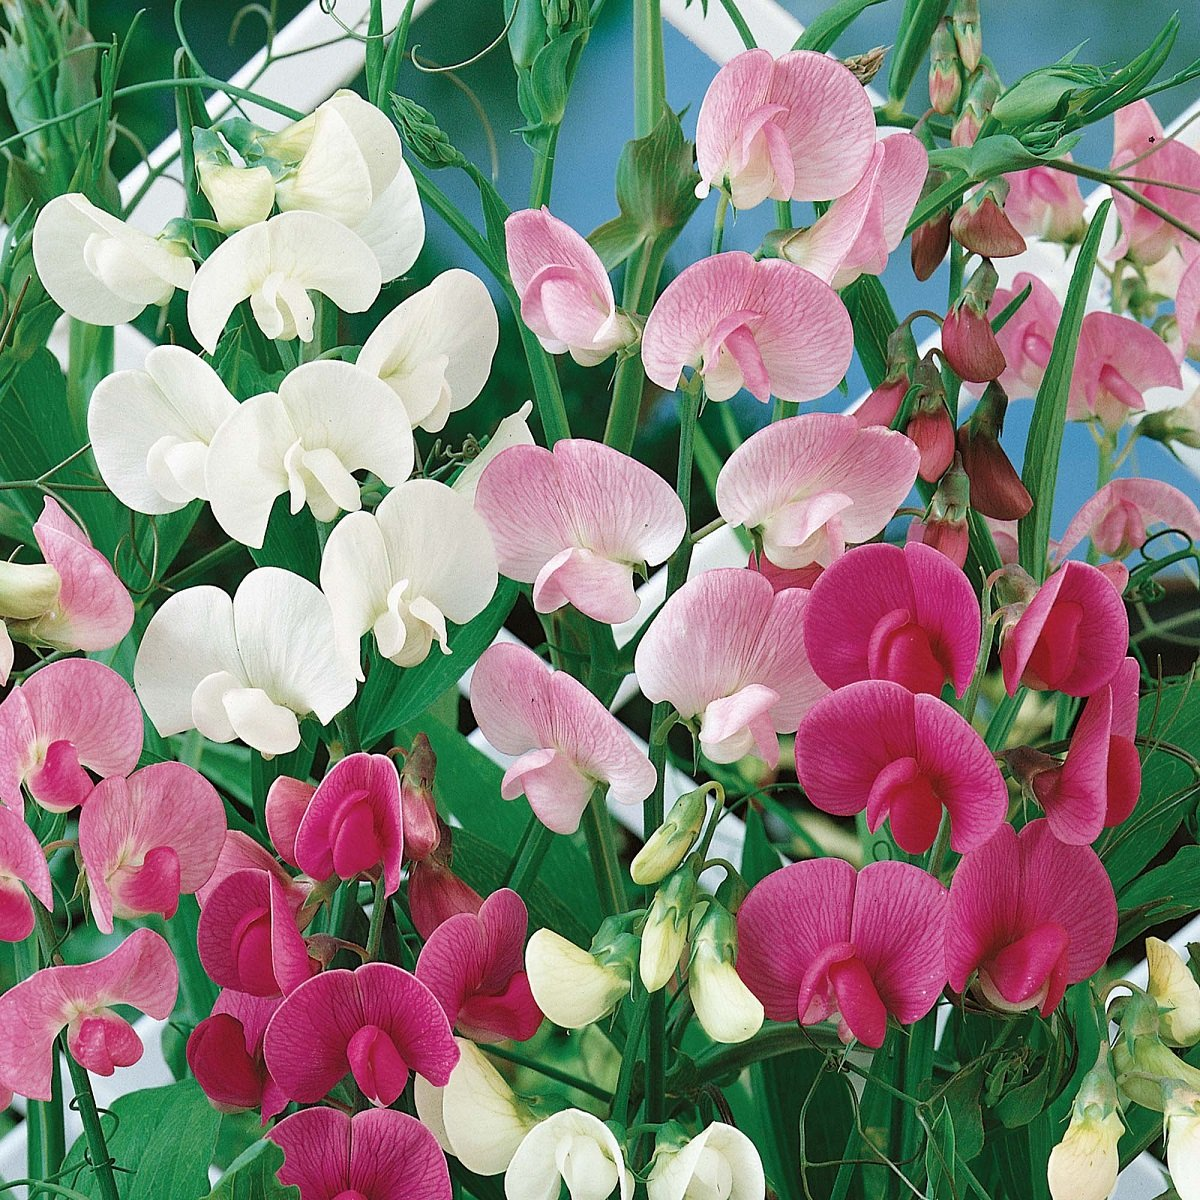 SWEET PEA FRAGRANCE OIL - 4 OZ - FOR CANDLE & SOAP MAKING BY VIRGINIA CANDLE SUPPLY - FREE S&H IN USA VCS